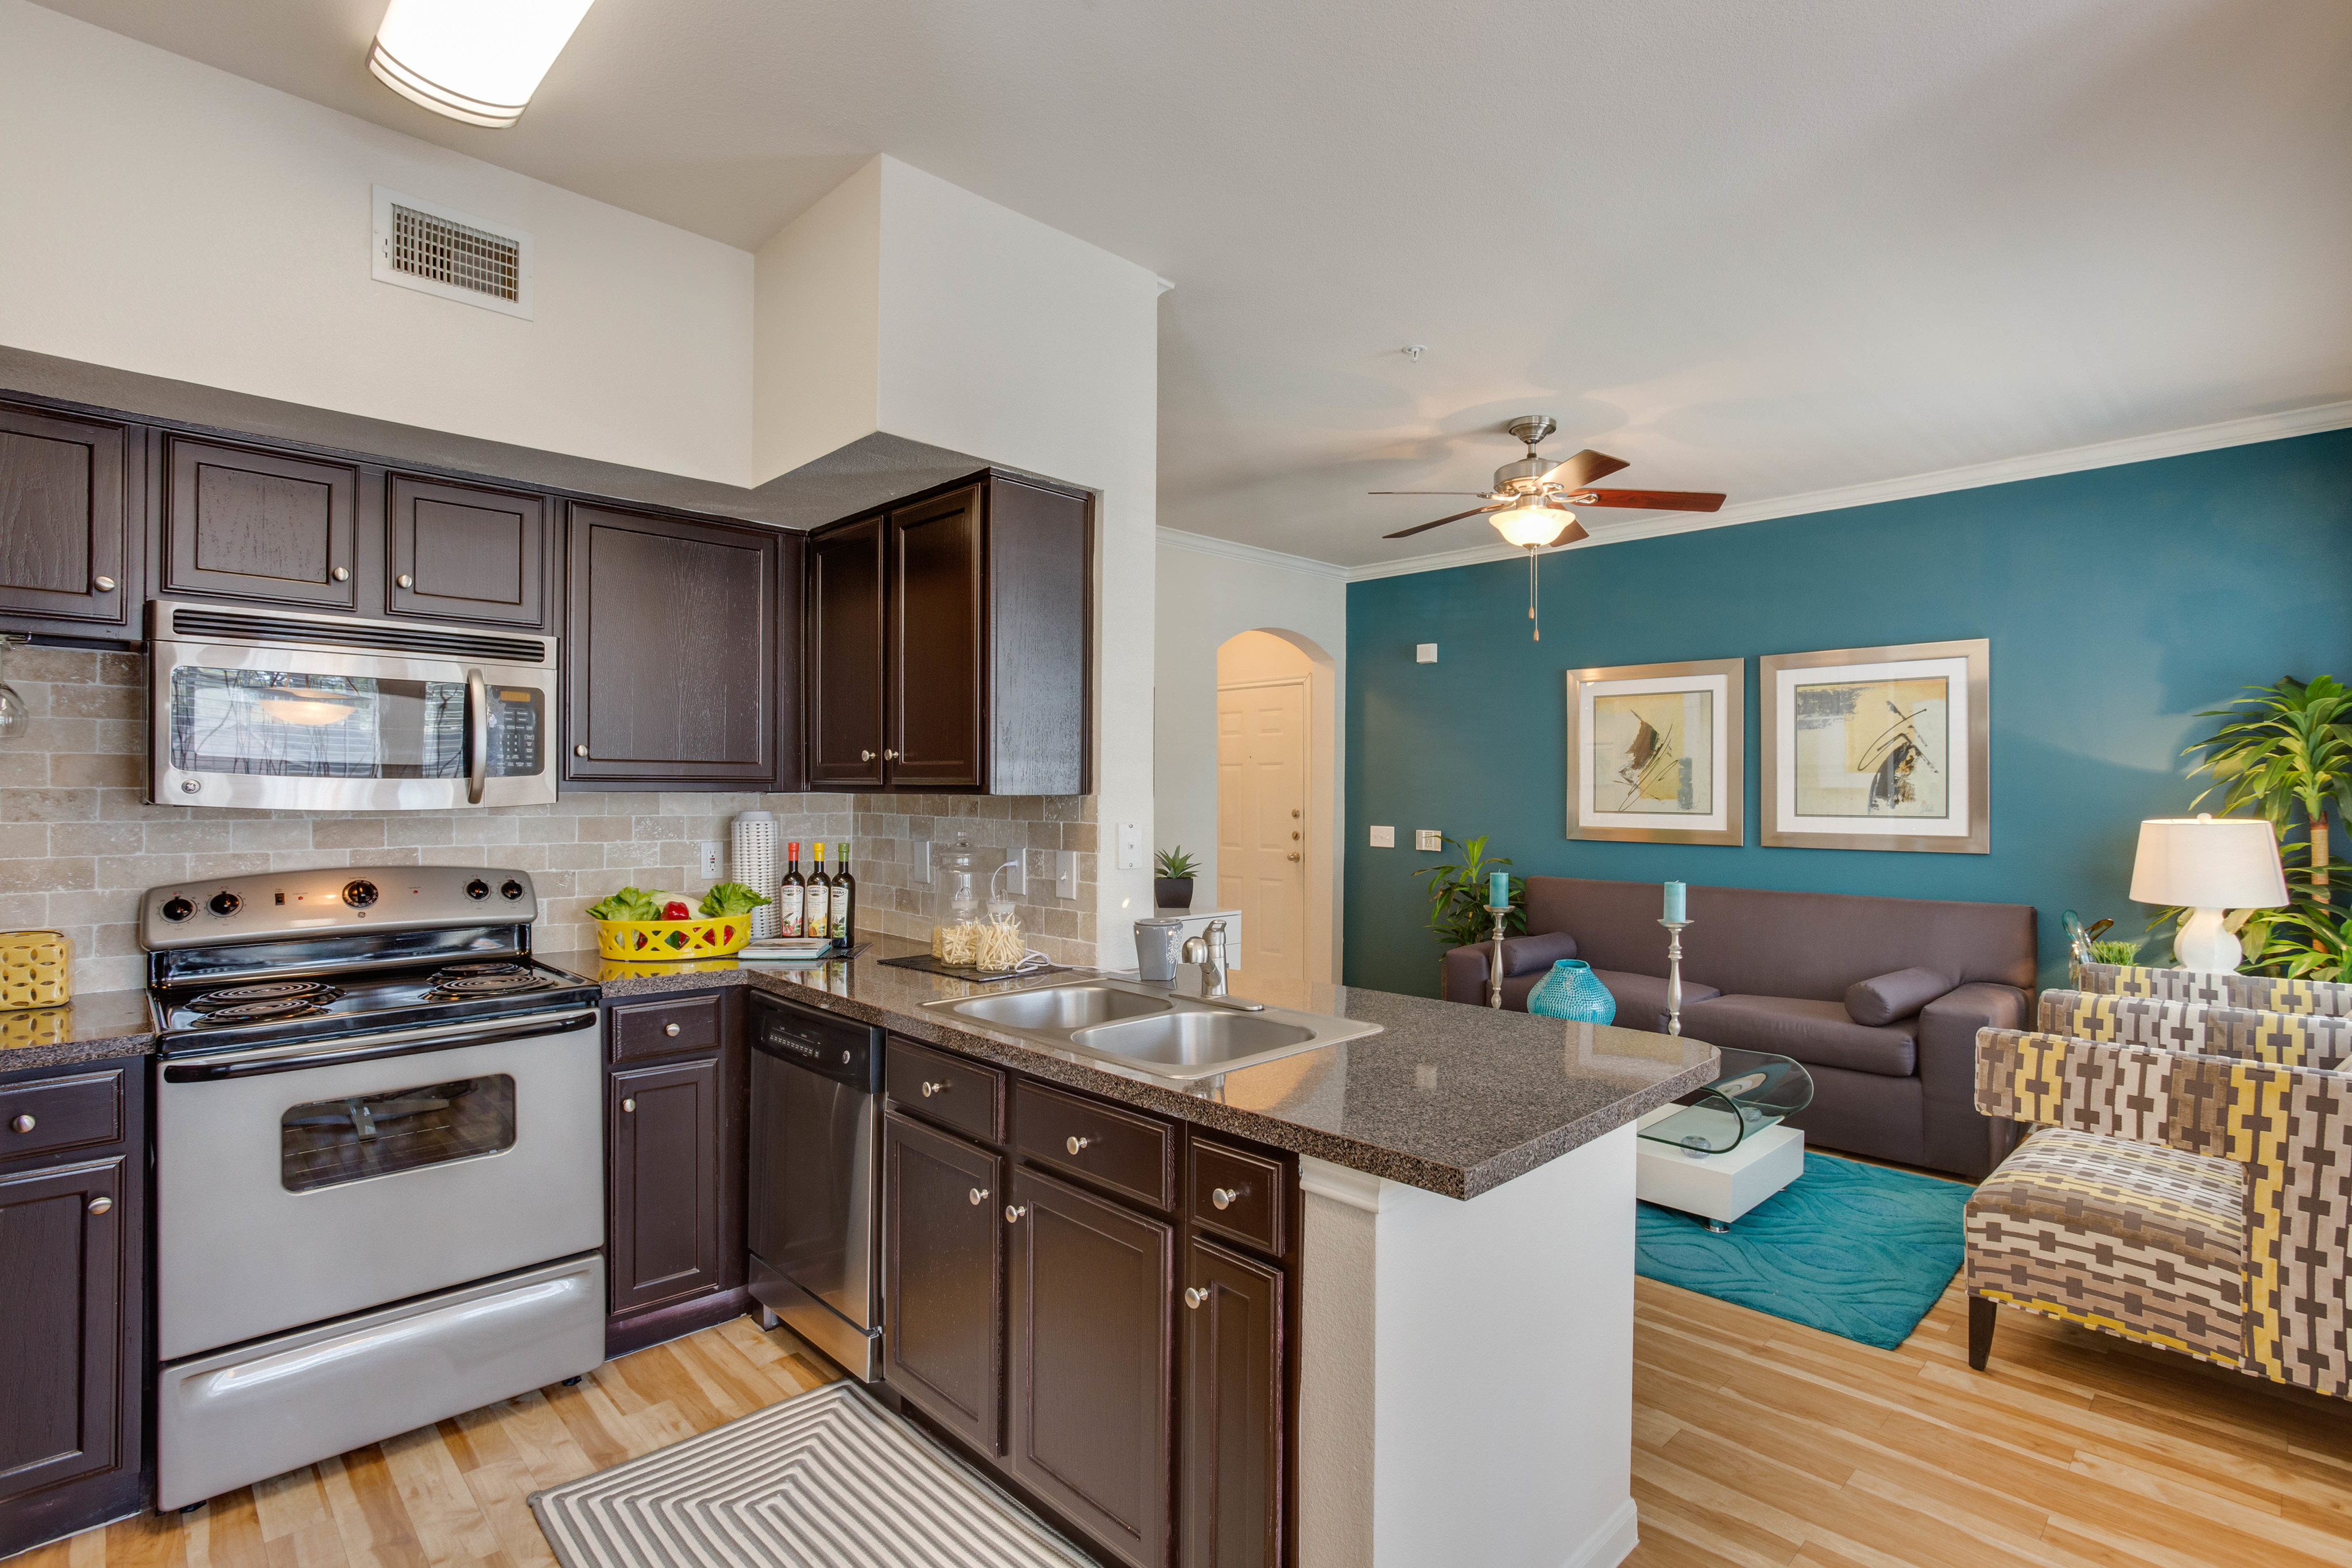 View of Kitchen with Stainless Steel Appliances, Plank-Wood Flooring, and View of Living Room at Ravneaux Apartments